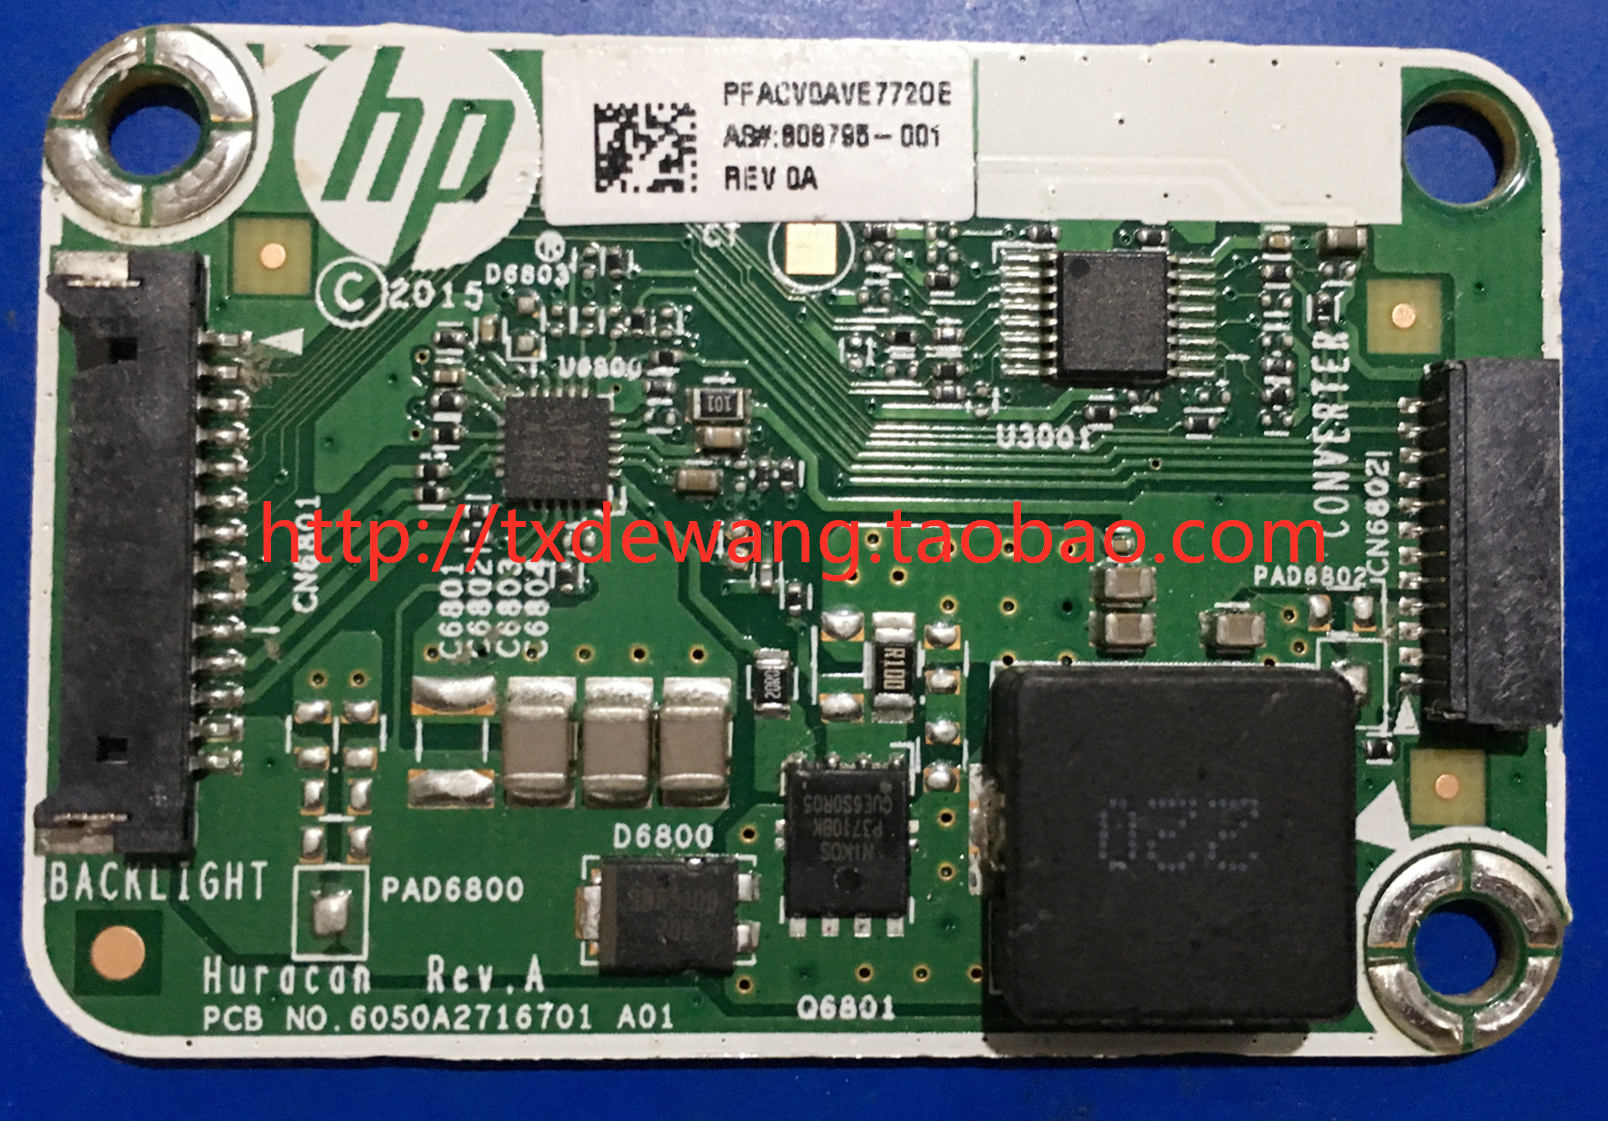 HP 600G2 808795-001 backlight / boost board 6050A2716701 A01